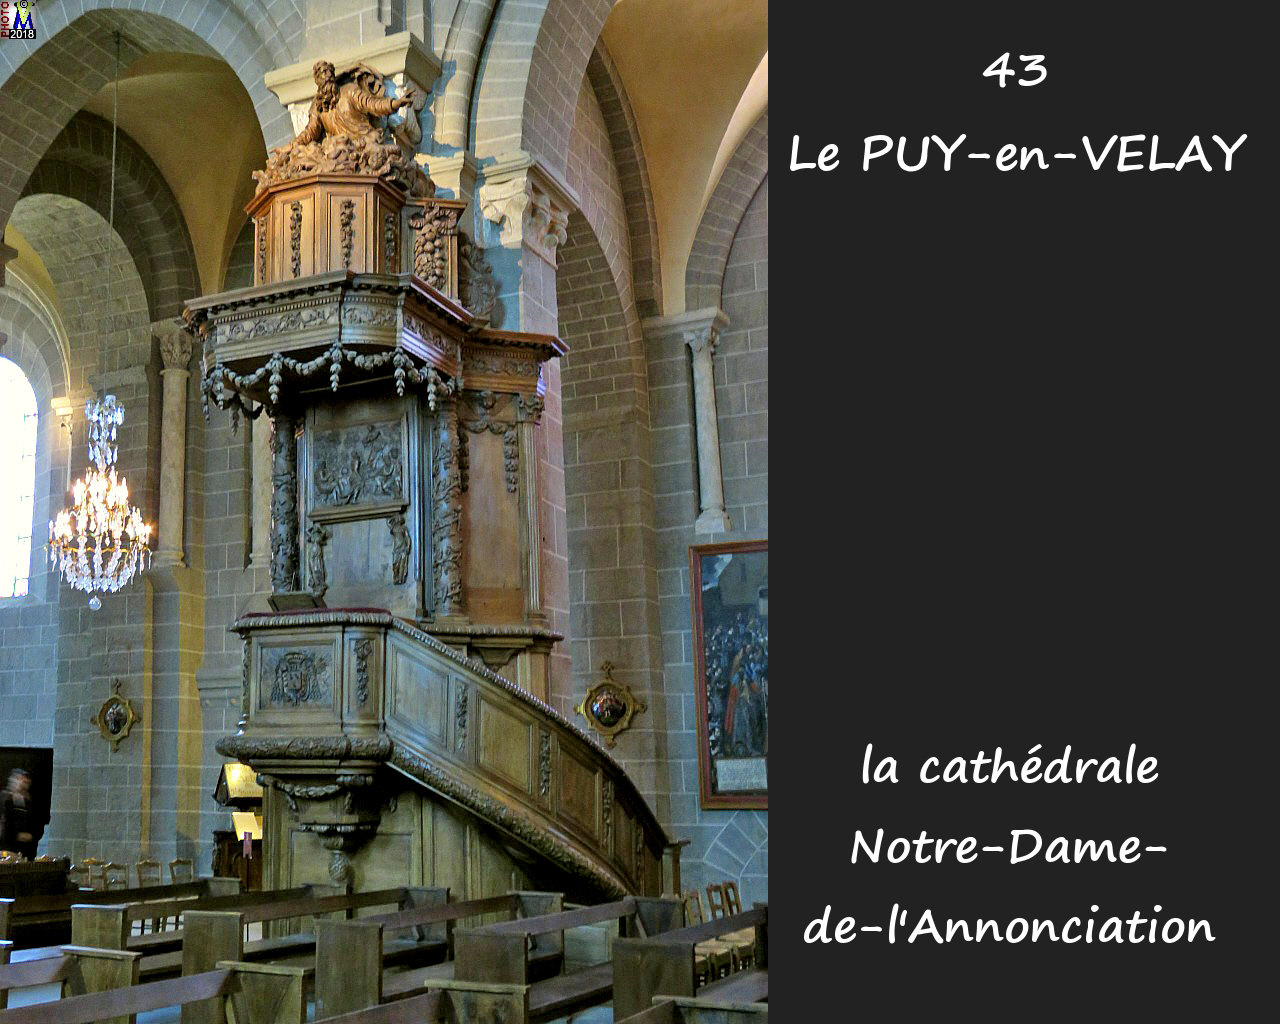 43PUY-EN-VELAY_cathedrale_252.jpg